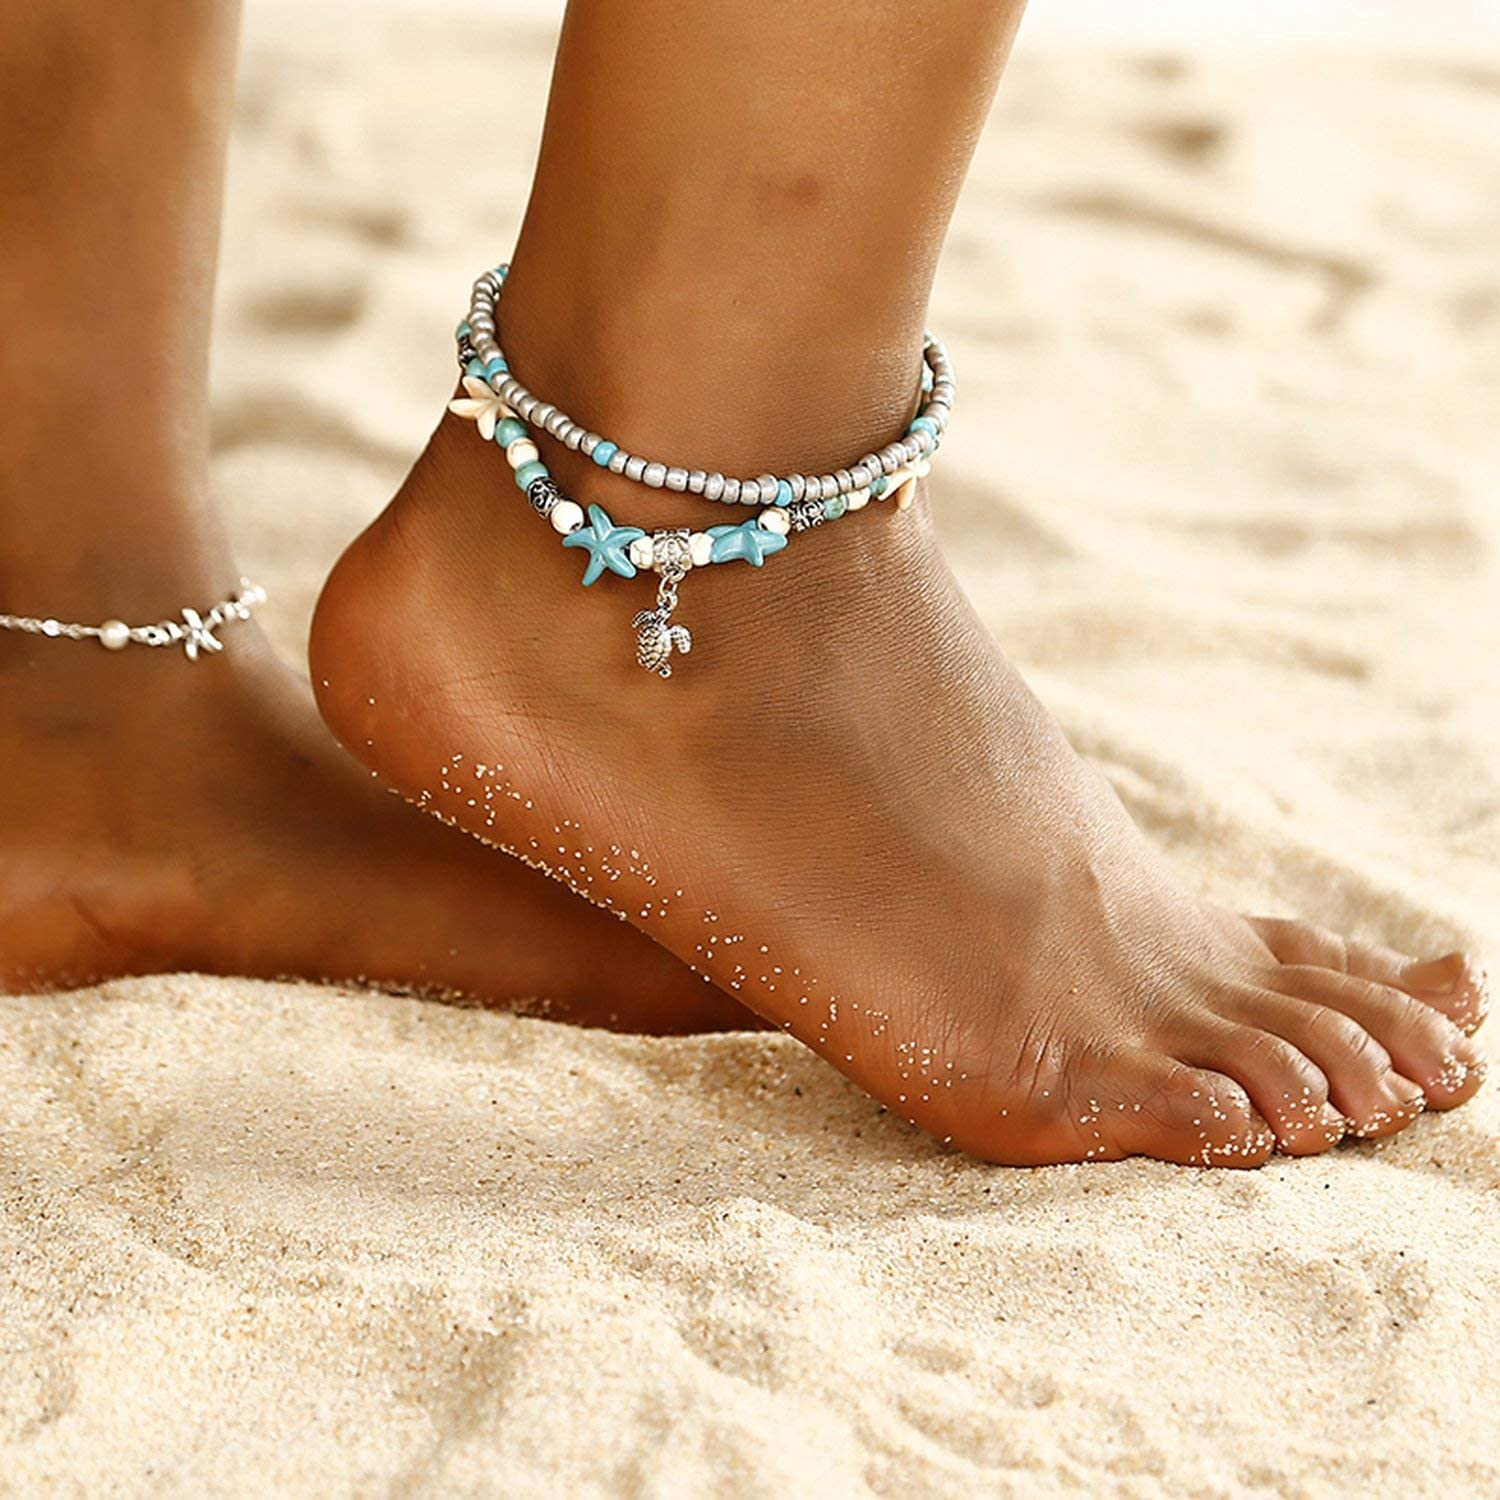 Anklet for Men and Women Sea Star Beach Design Foot Jewelry for Friend